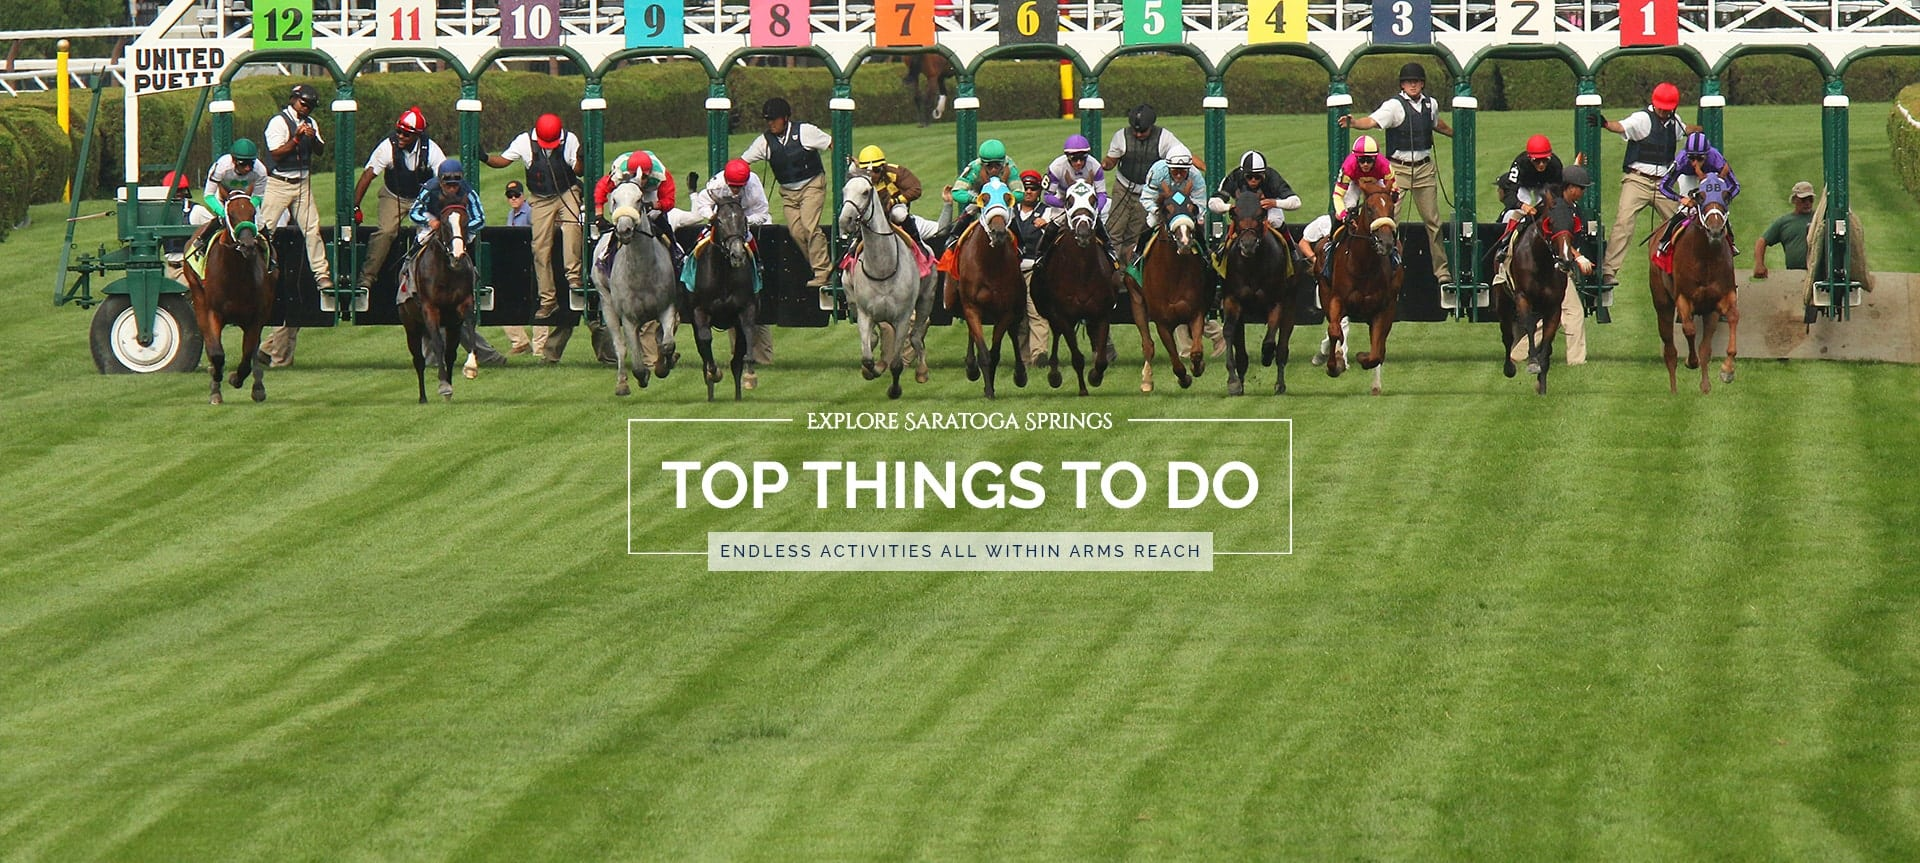 Top things to do in saratoga springs